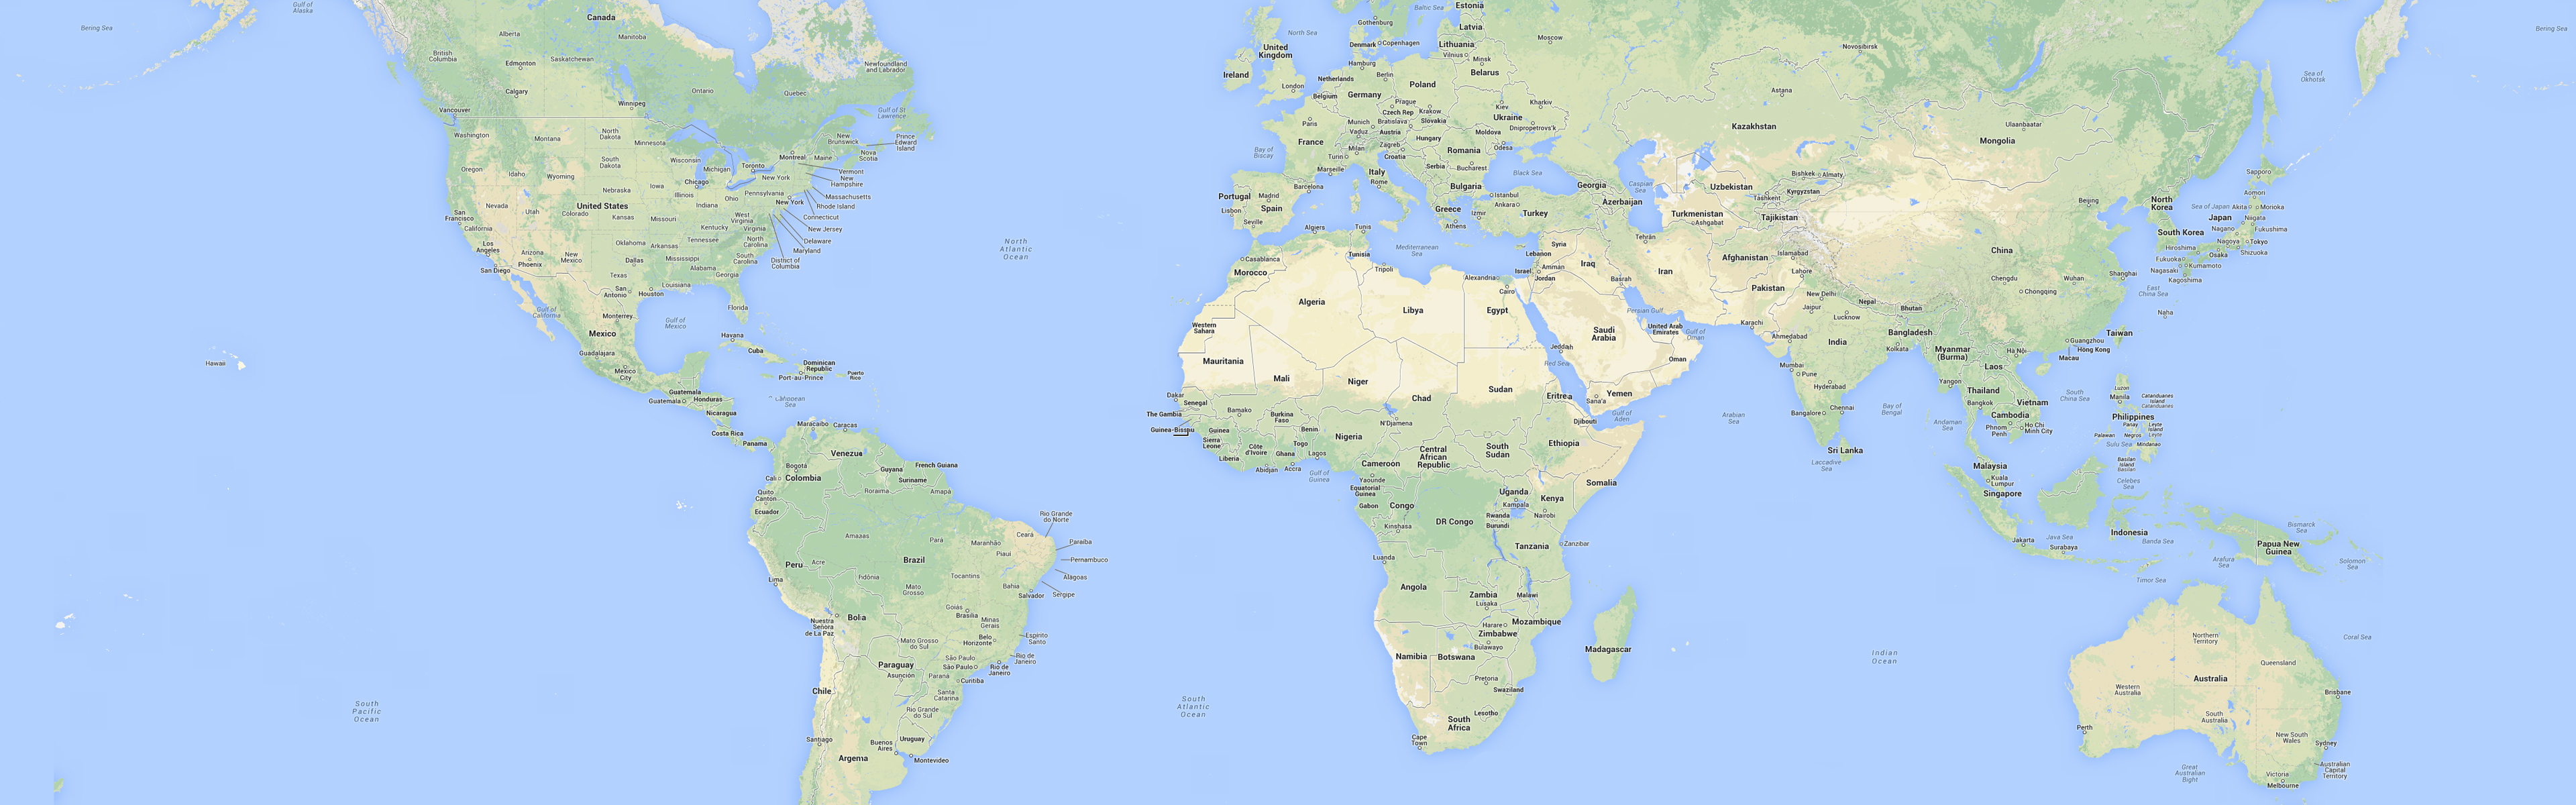 tad bit smaller the world map HD wallpaper for dual screens at 3360 3840x1200